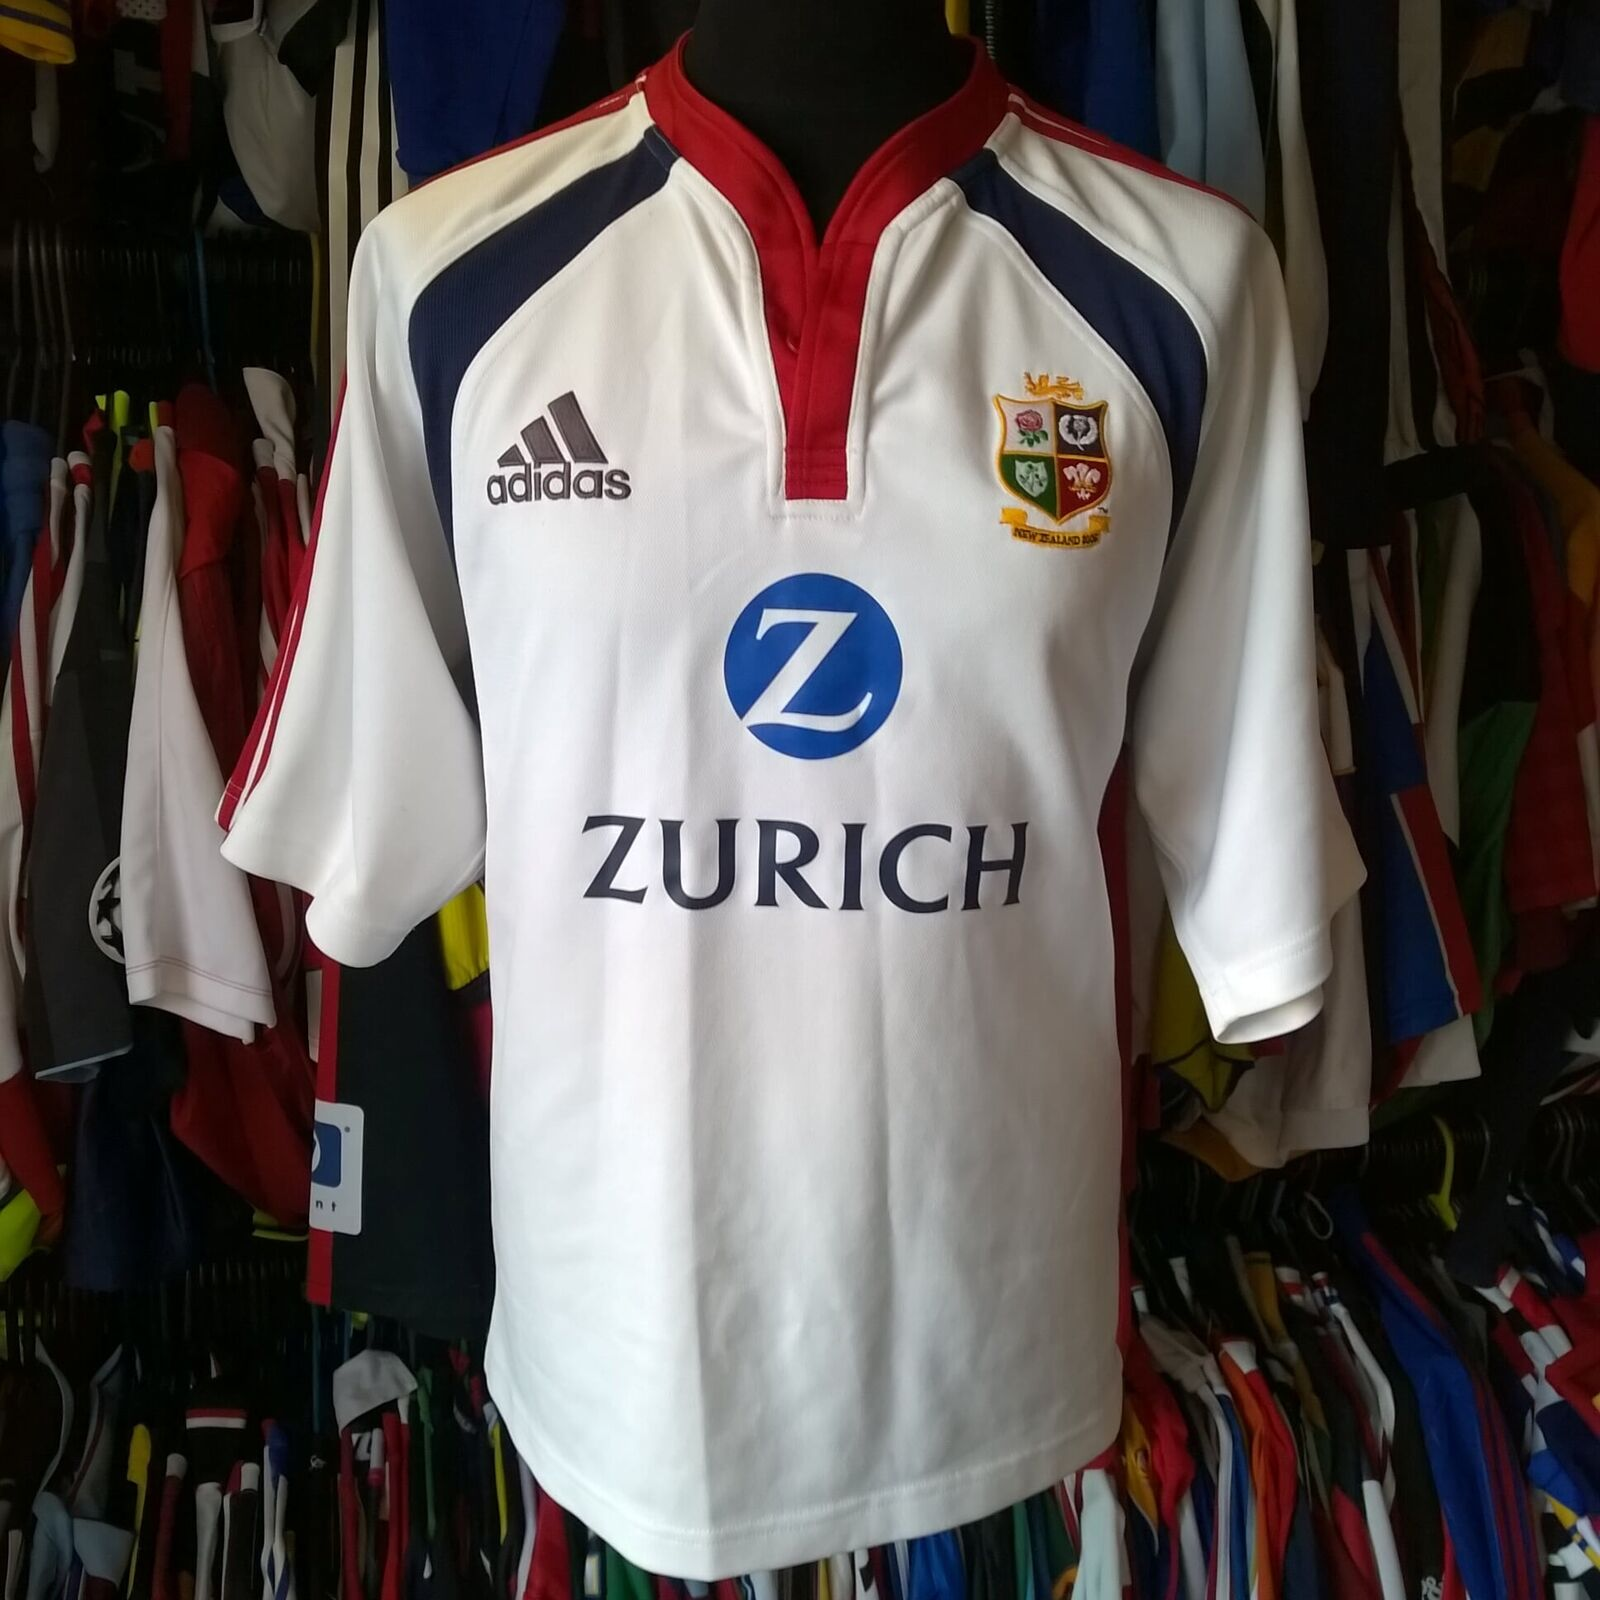 BRITISH LIONS 2005 AWAY UNION RUGBY SHIRT ADIDAS JERSEY SIZE ADULT L